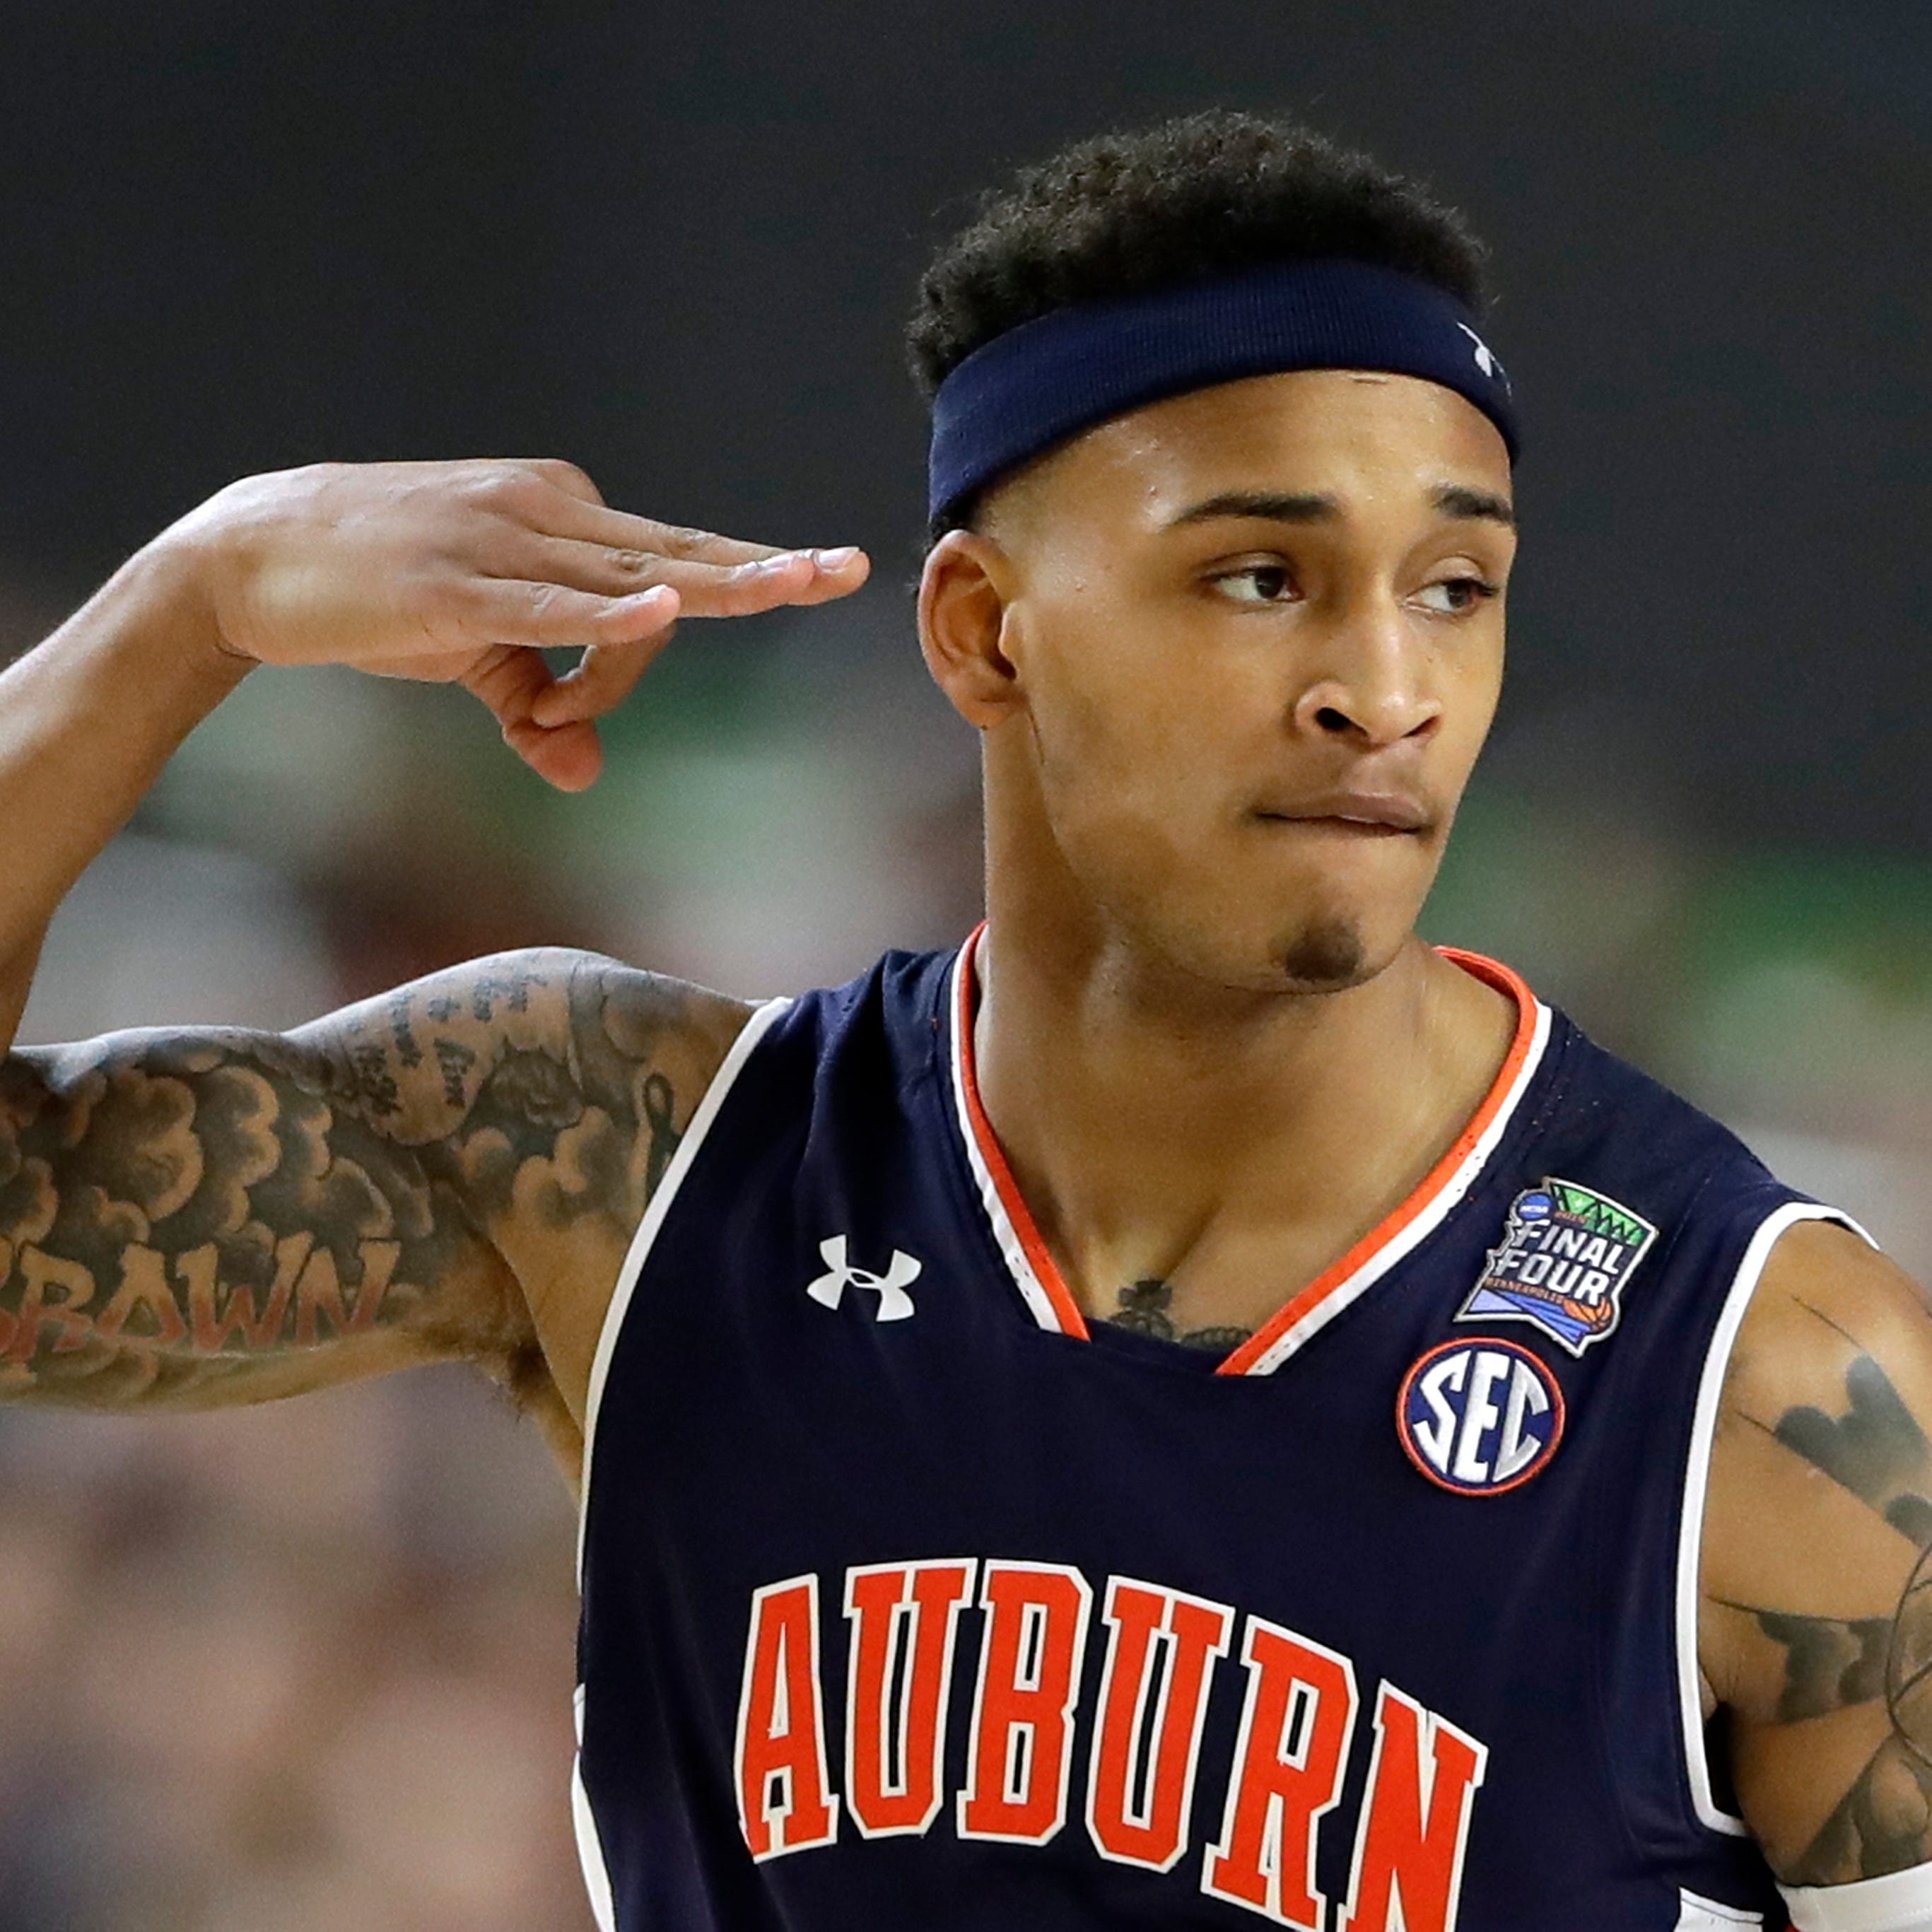 Bryce Brown's career will go down as one of the best in Auburn men's basketball history